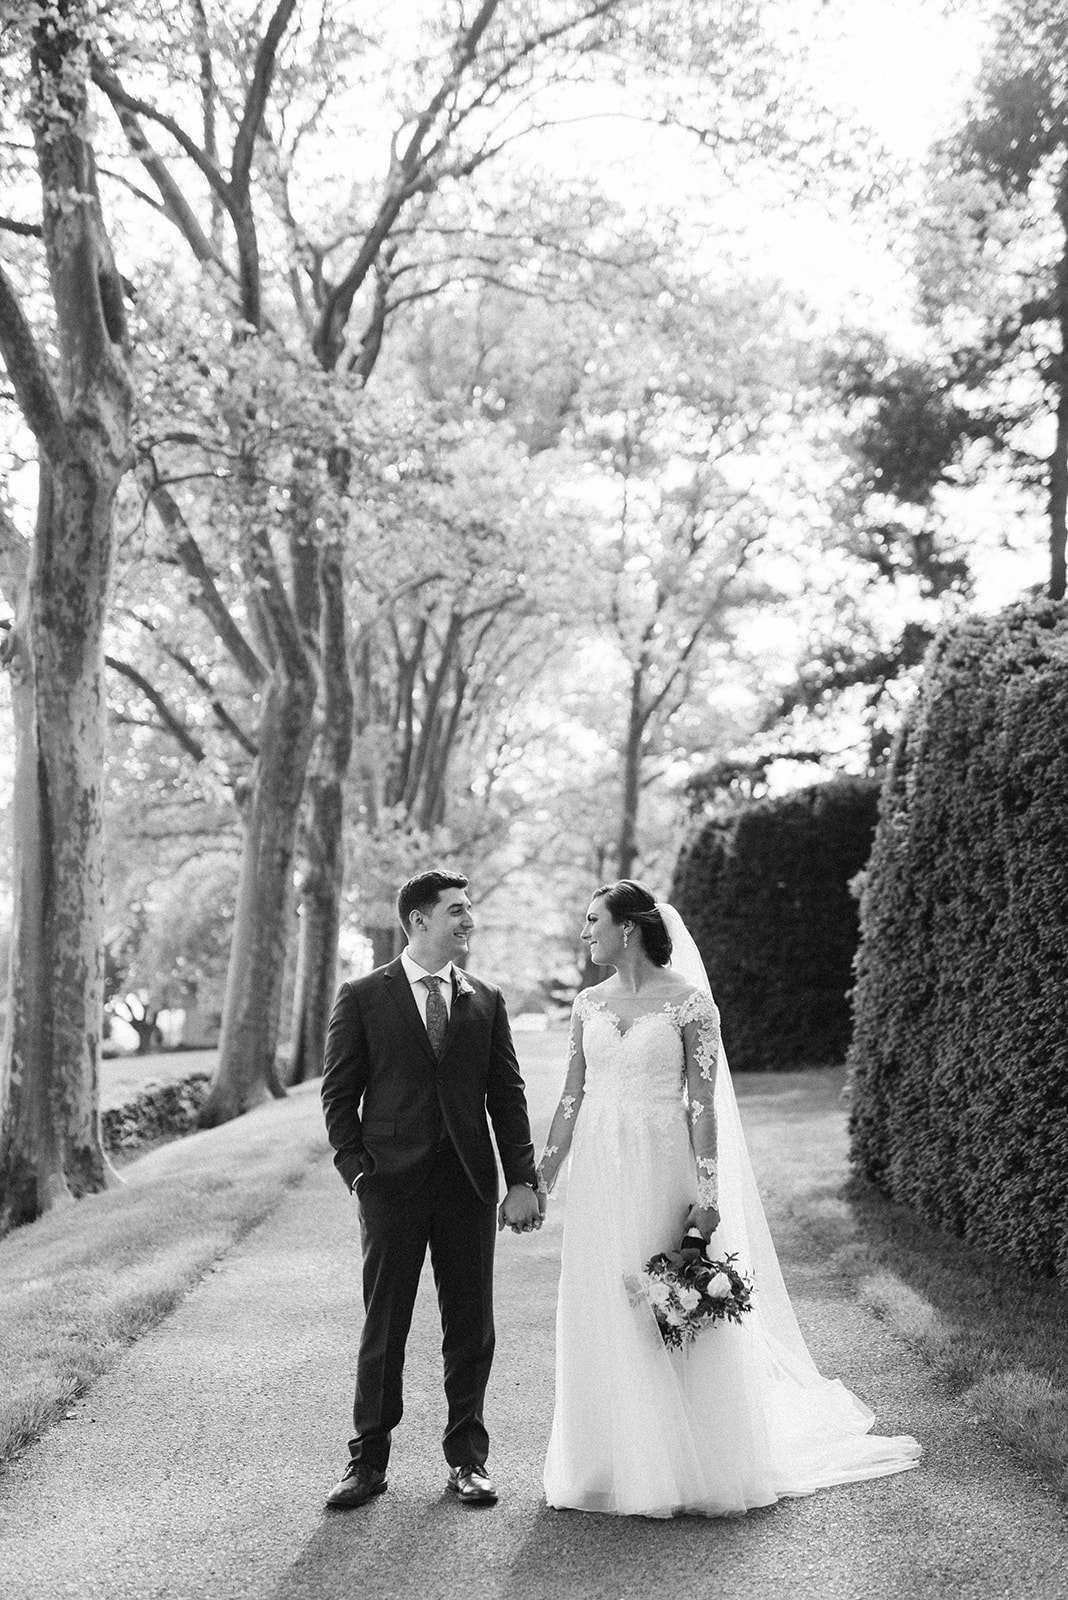 Bride and Groom on their wedding day at Drumore Estate.